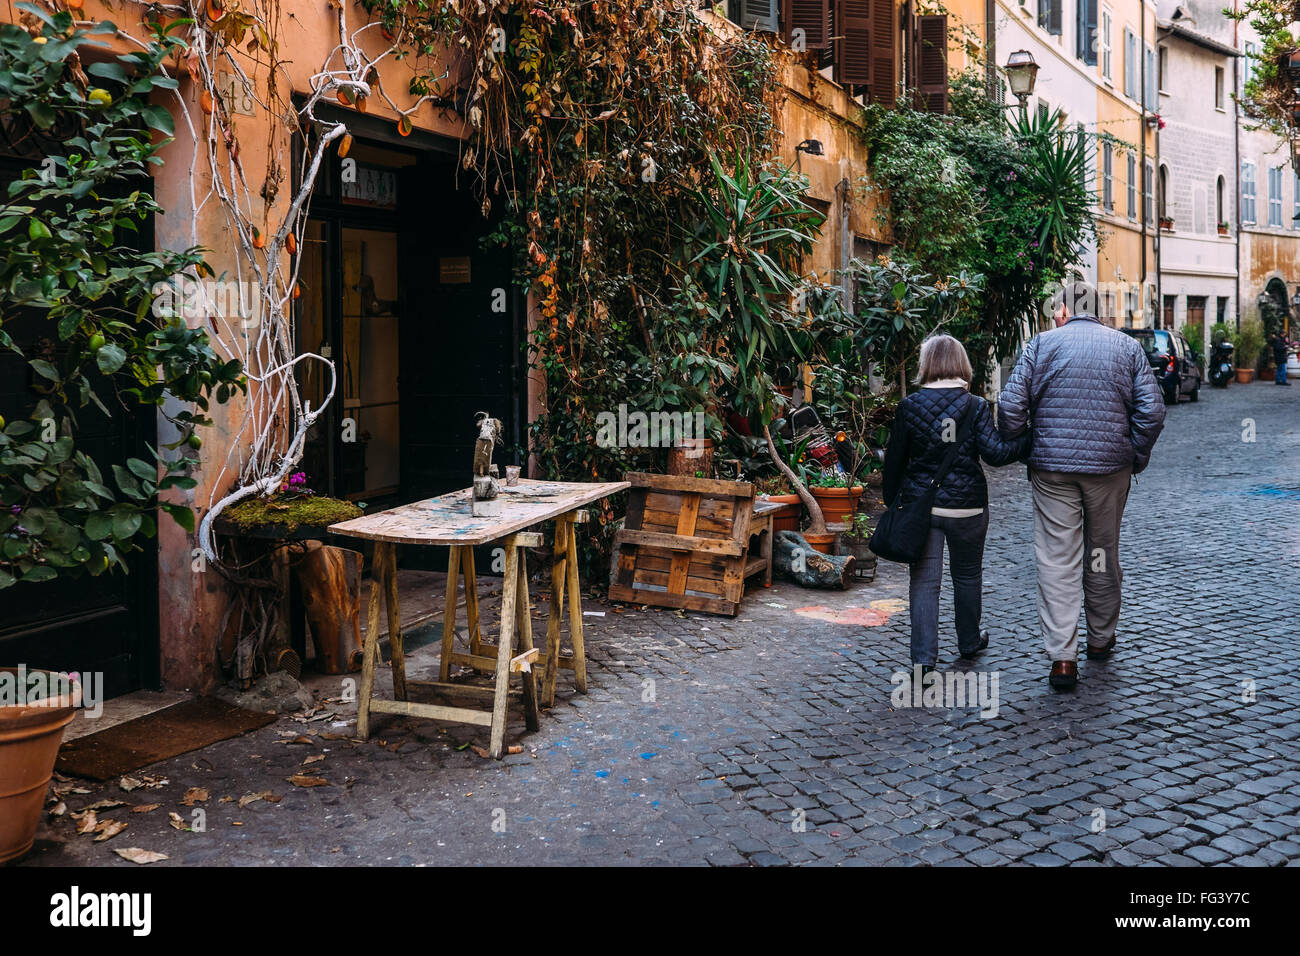 A couple strolls down Via dei Cappellari, a characteristic street full of artisans in Rome, Italy - Stock Image